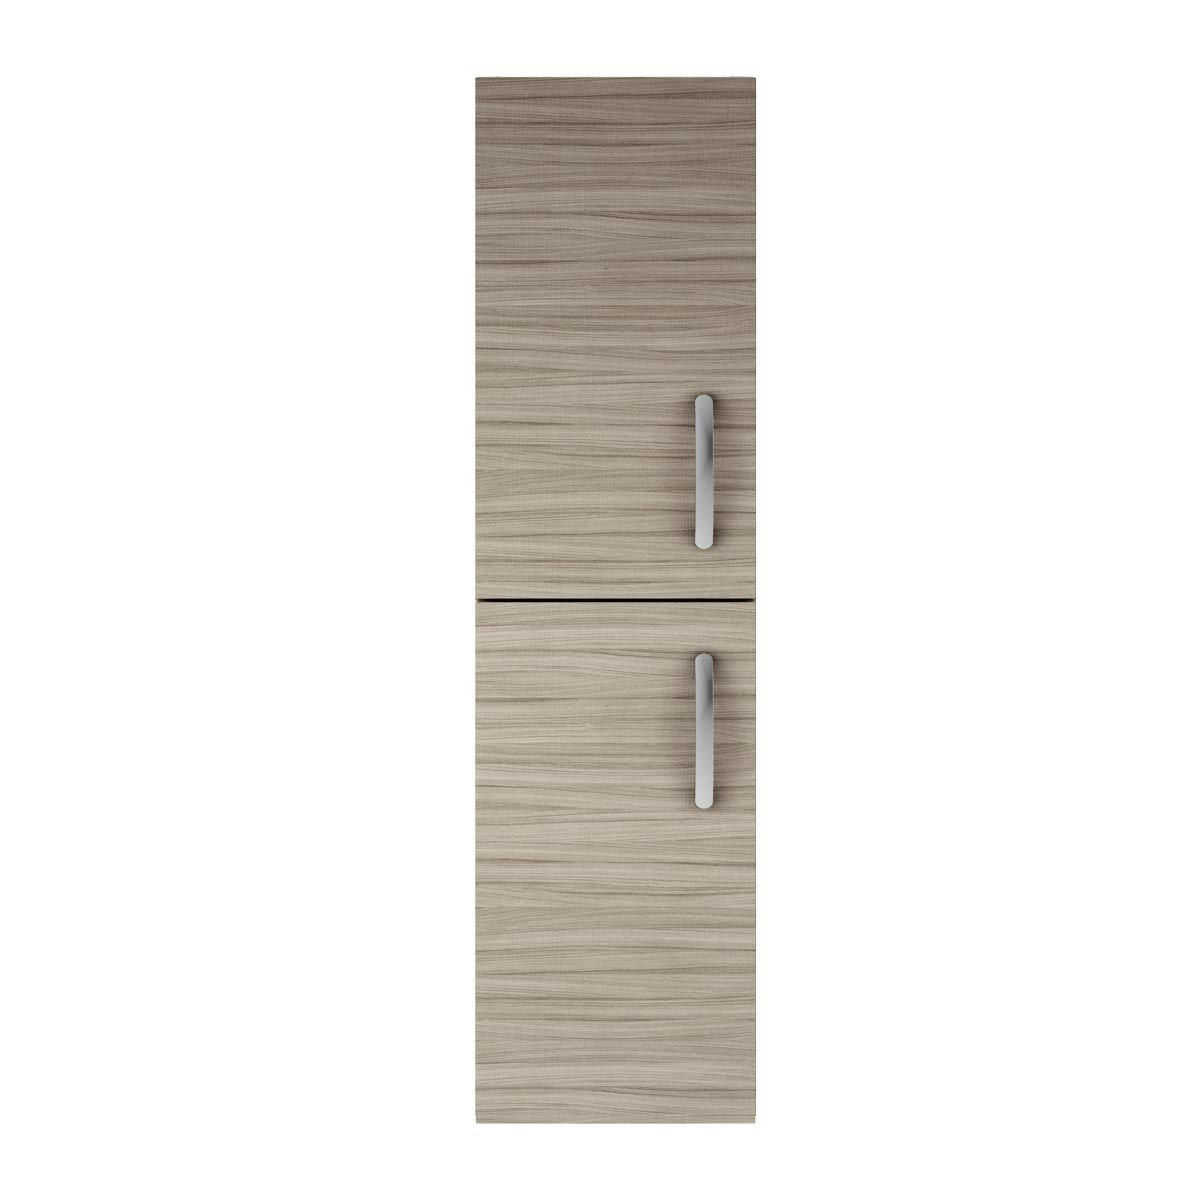 Nuie Athena Driftwood Double Door Tall Unit 300mm